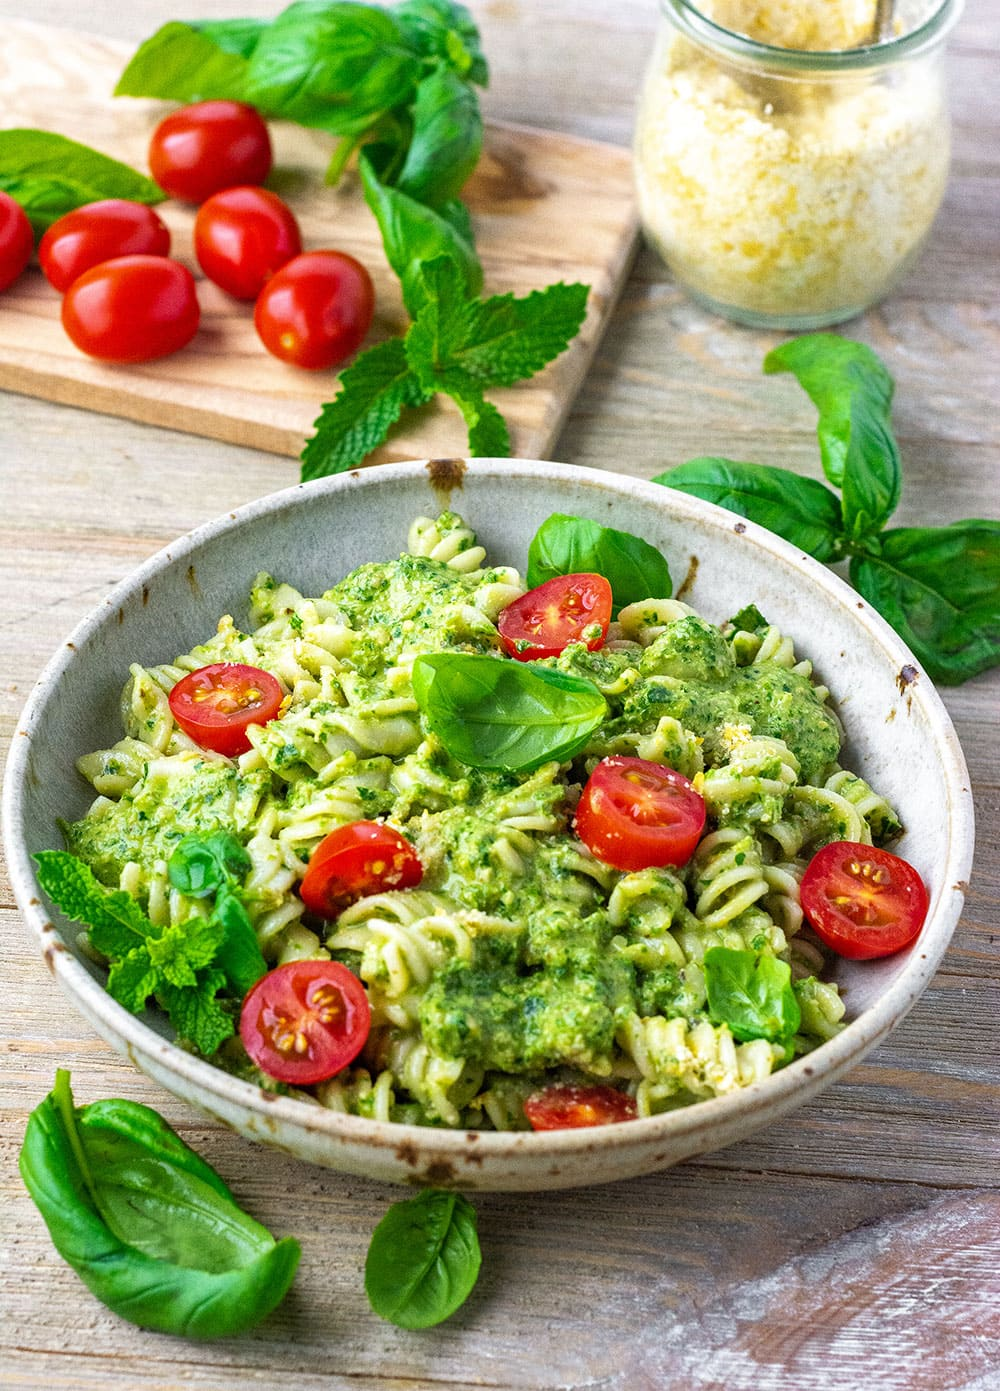 Easy vegan pesto pasta, in a ream bowl on a wooden background with grape tomatoes, basil and mint leaves on a wooden cutting board